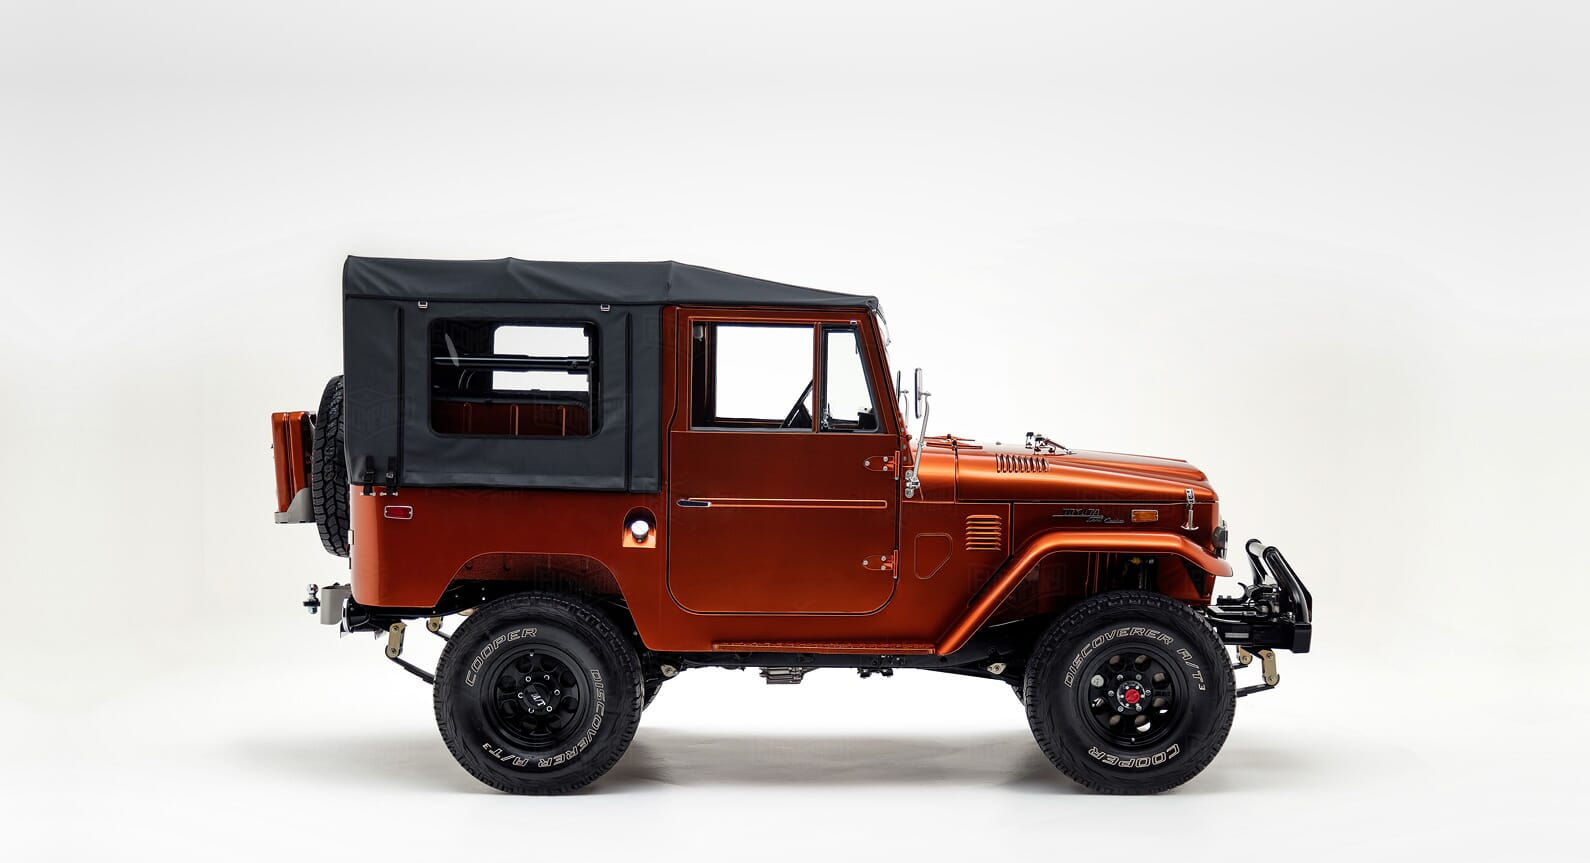 This Restored 1972 Toyota FJ40 Land Cruiser Is Inspired by a Tonka Truck